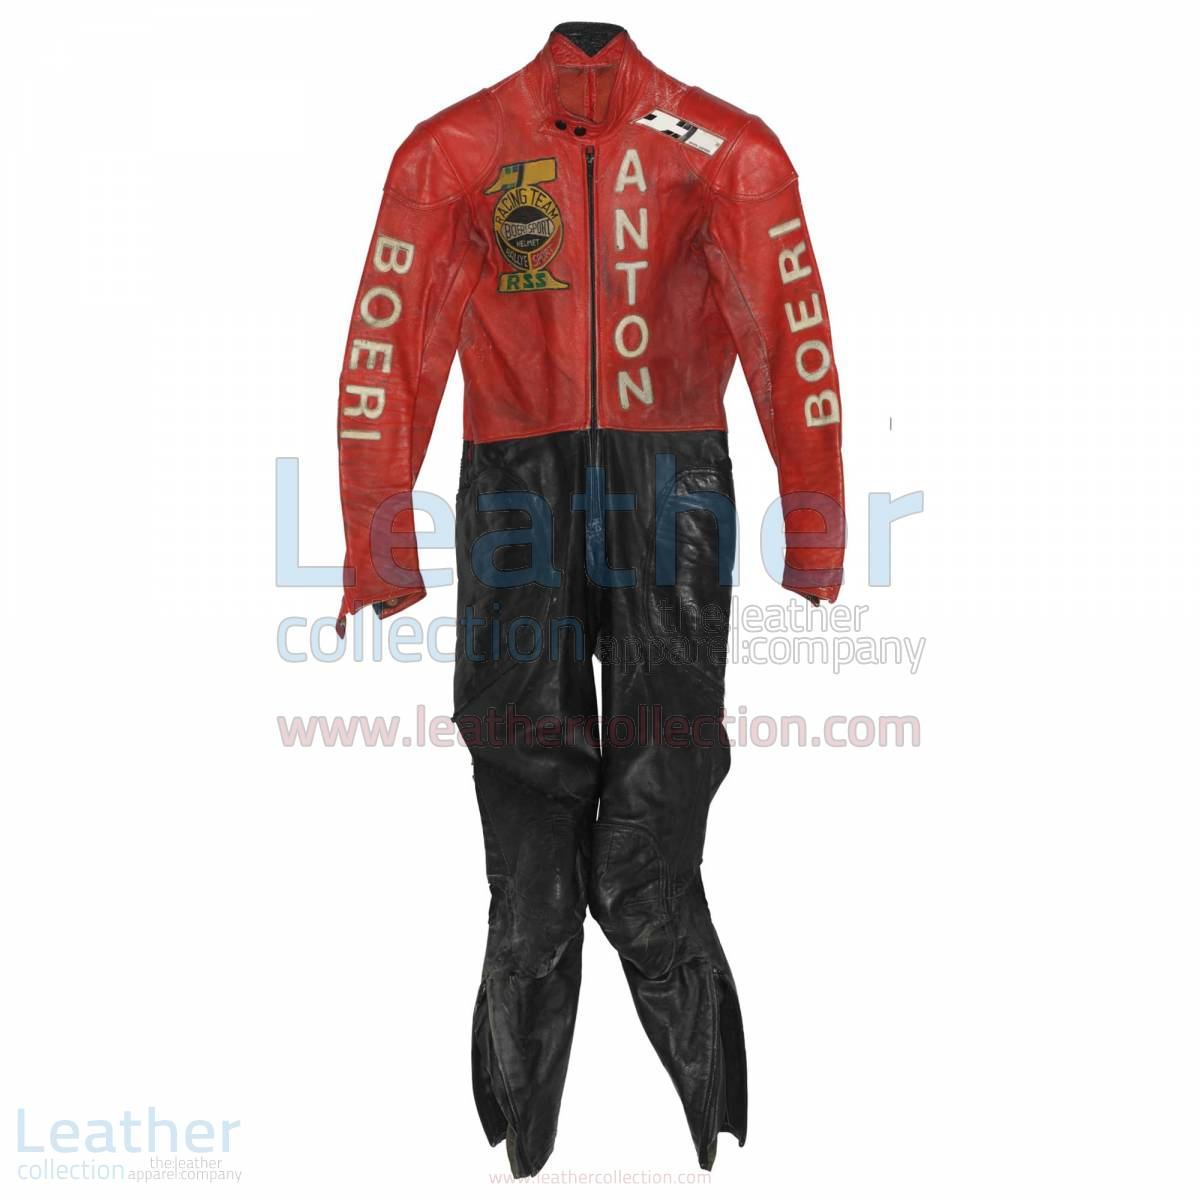 Toni Mang Kawasaki GP 1980 Racing Suit